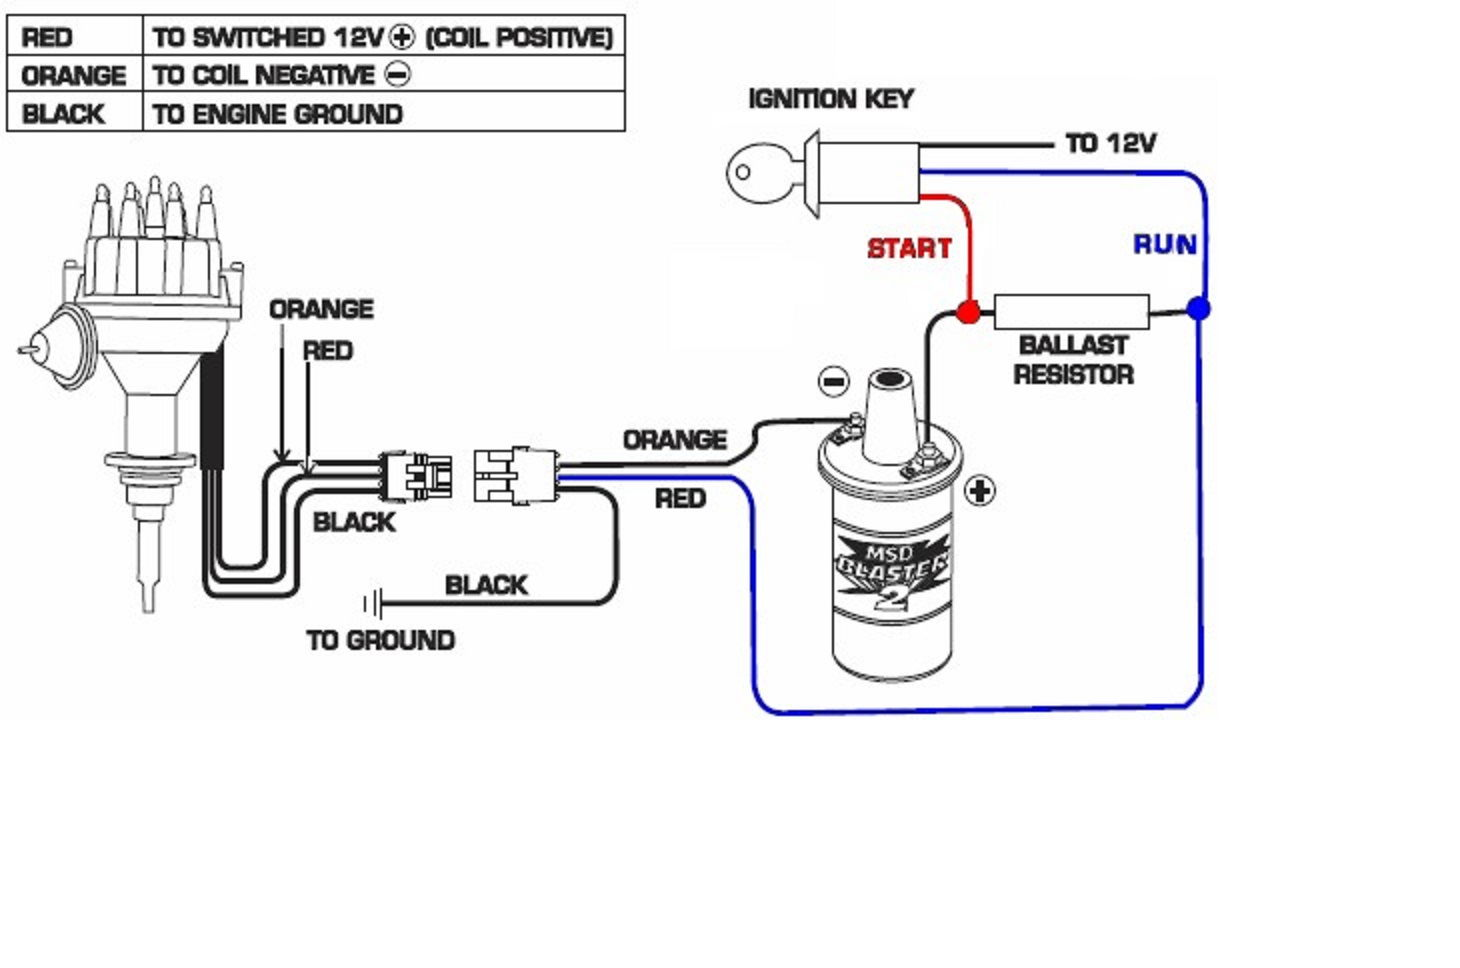 DIAGRAM] Accel Ignition Wiring Diagram Ford FULL Version HD Quality Diagram  Ford - CARRYBOYPHIL.K-DANSE.FRK-danse.fr